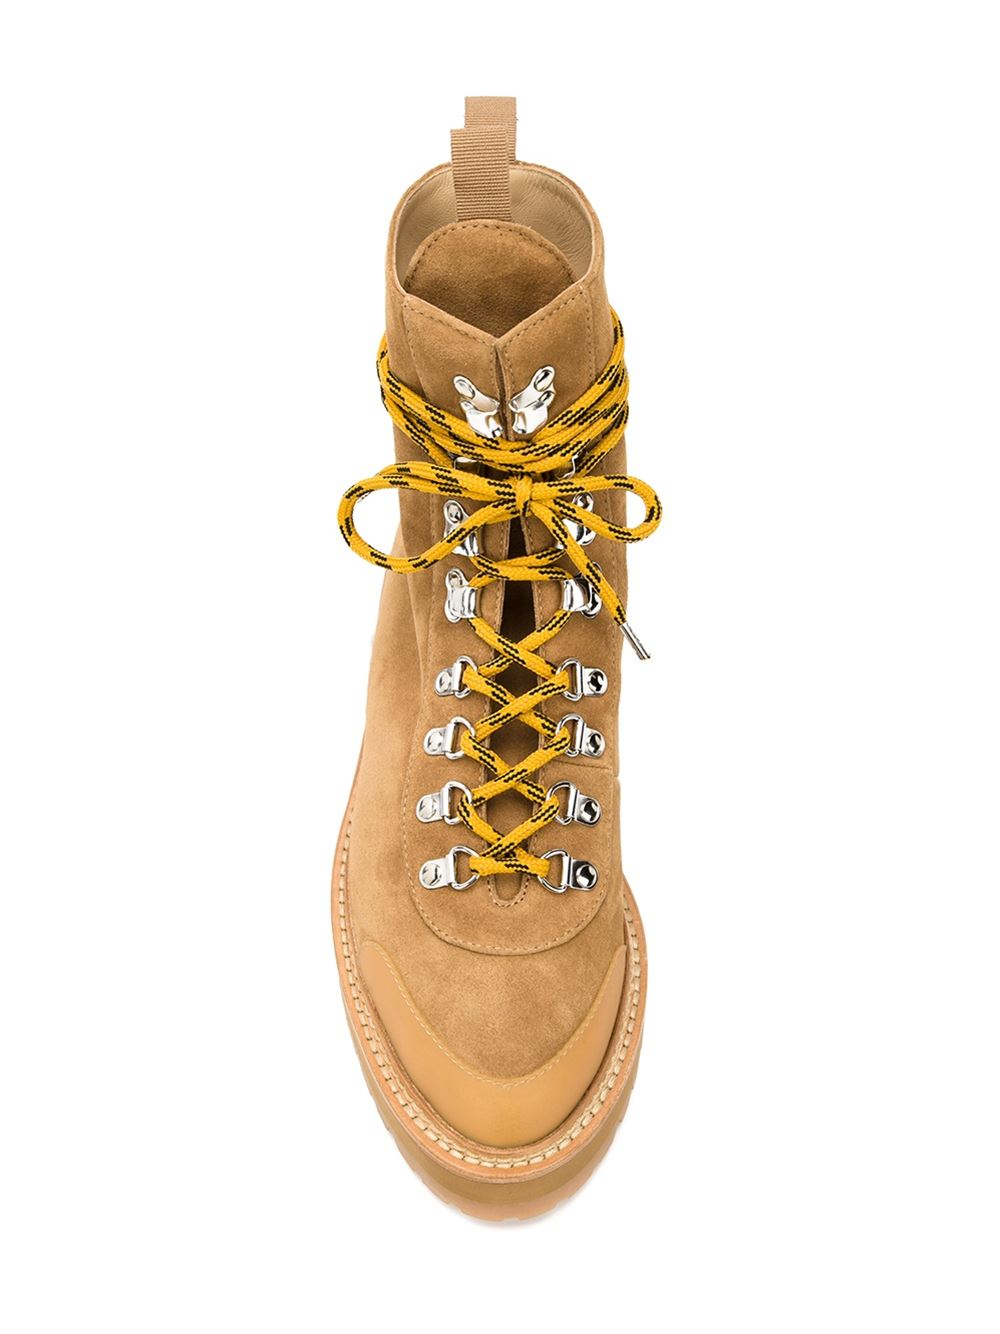 2b14bdaba0857 Off-White c/o Virgil Abloh Lace-up Hiking Boots in Brown - Lyst